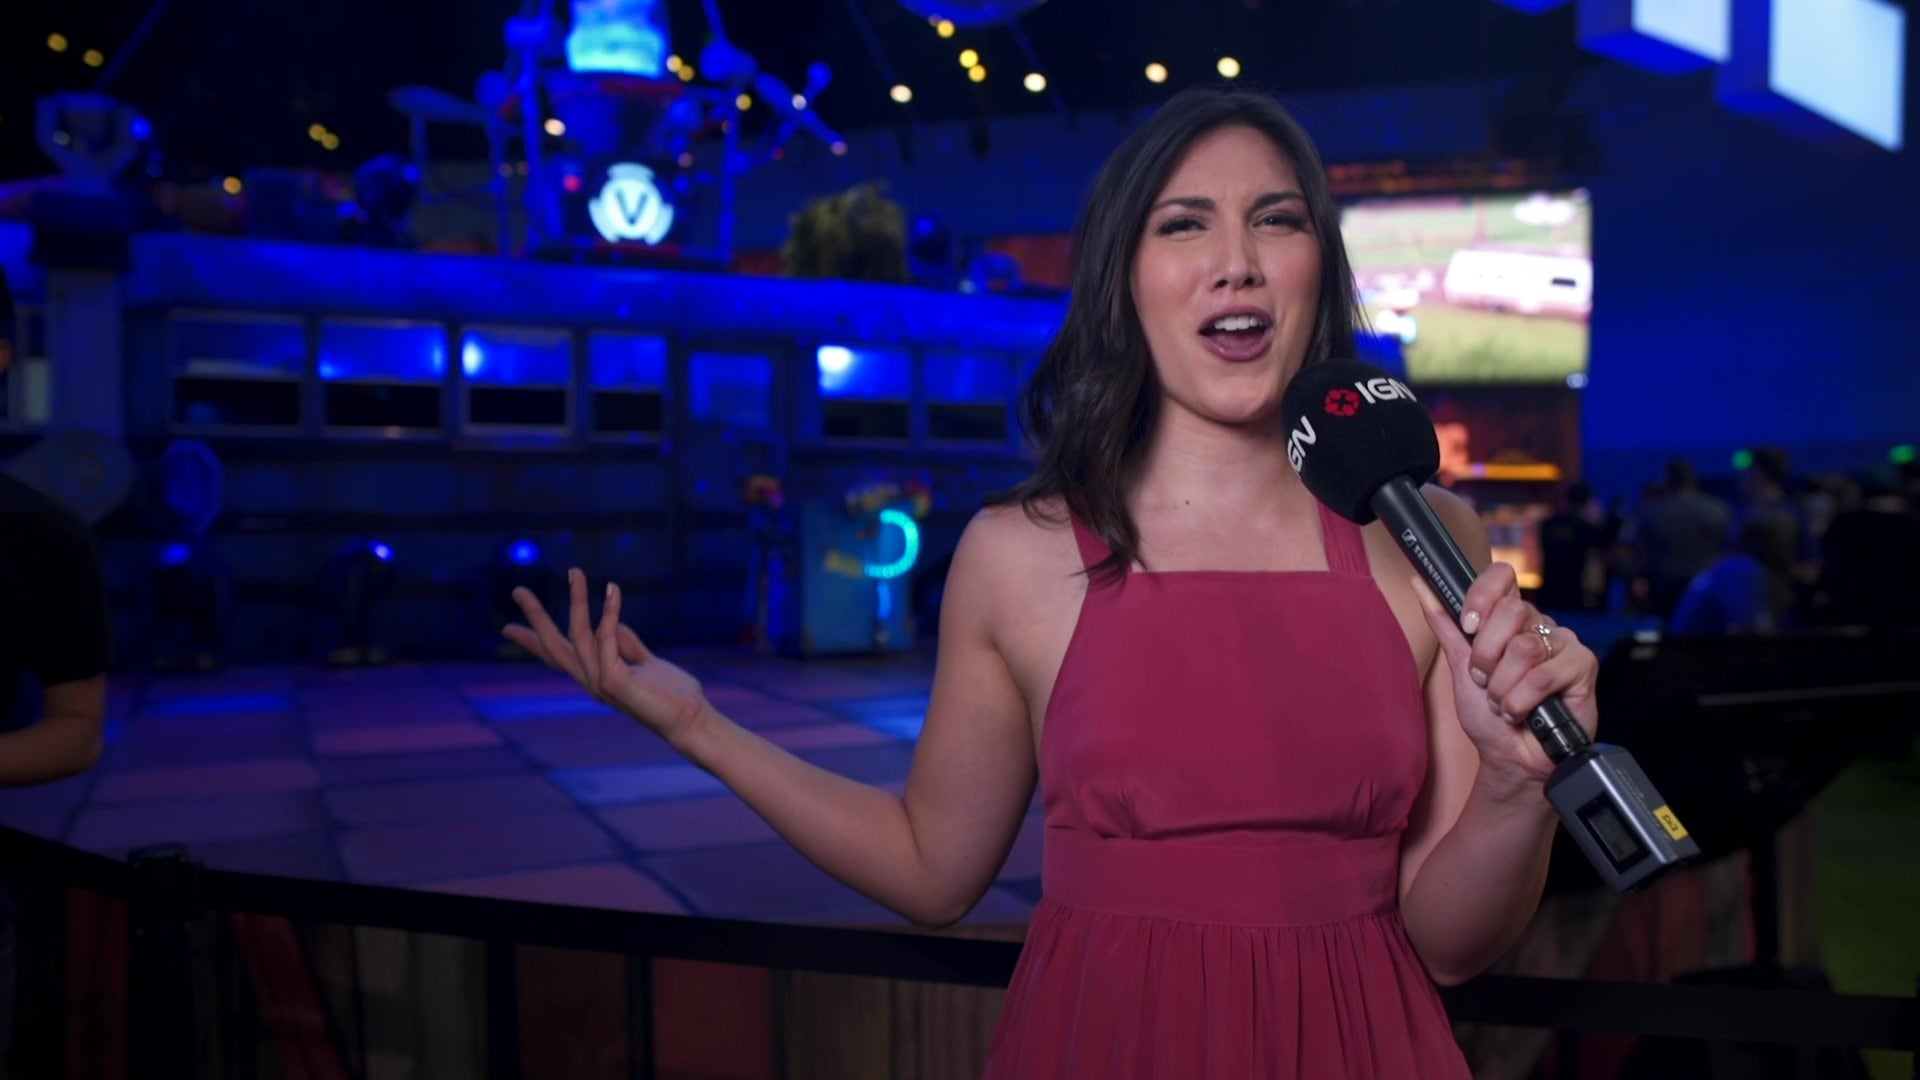 Fortnite's E3 2018 Booth is Epic! - IGN Access - IGN.com